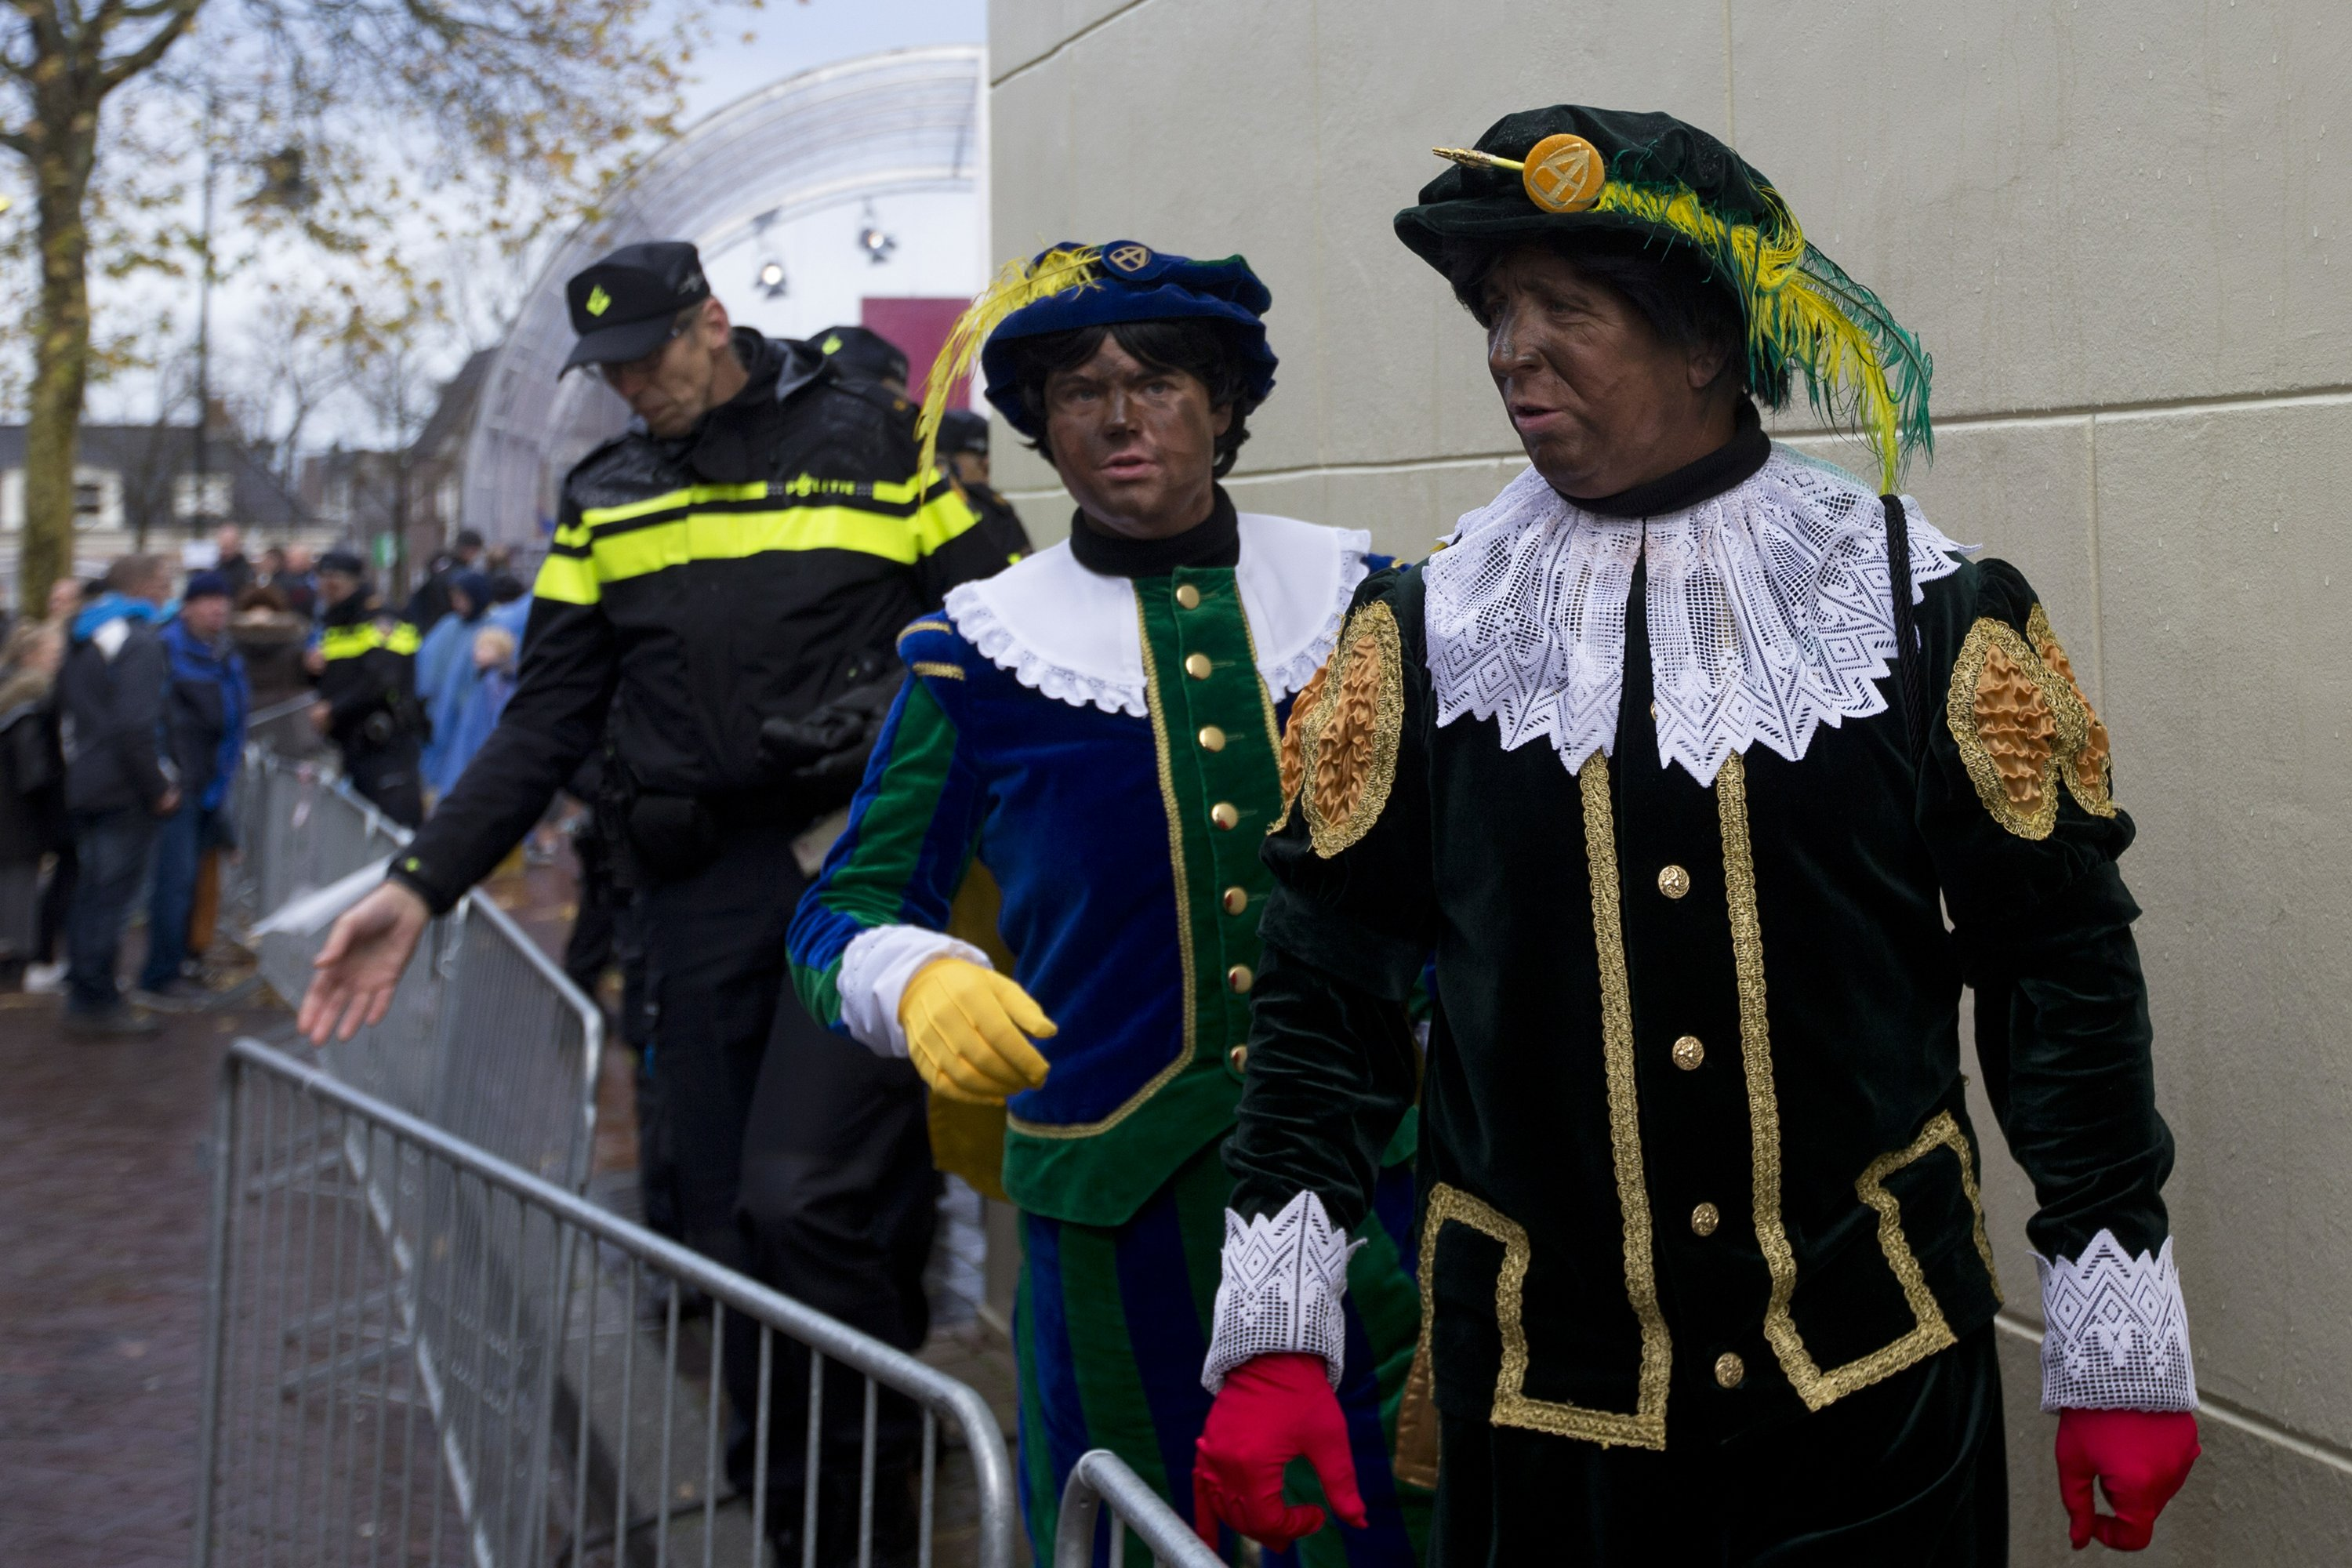 AP Explains: Racist history of blackface began in the 1830s